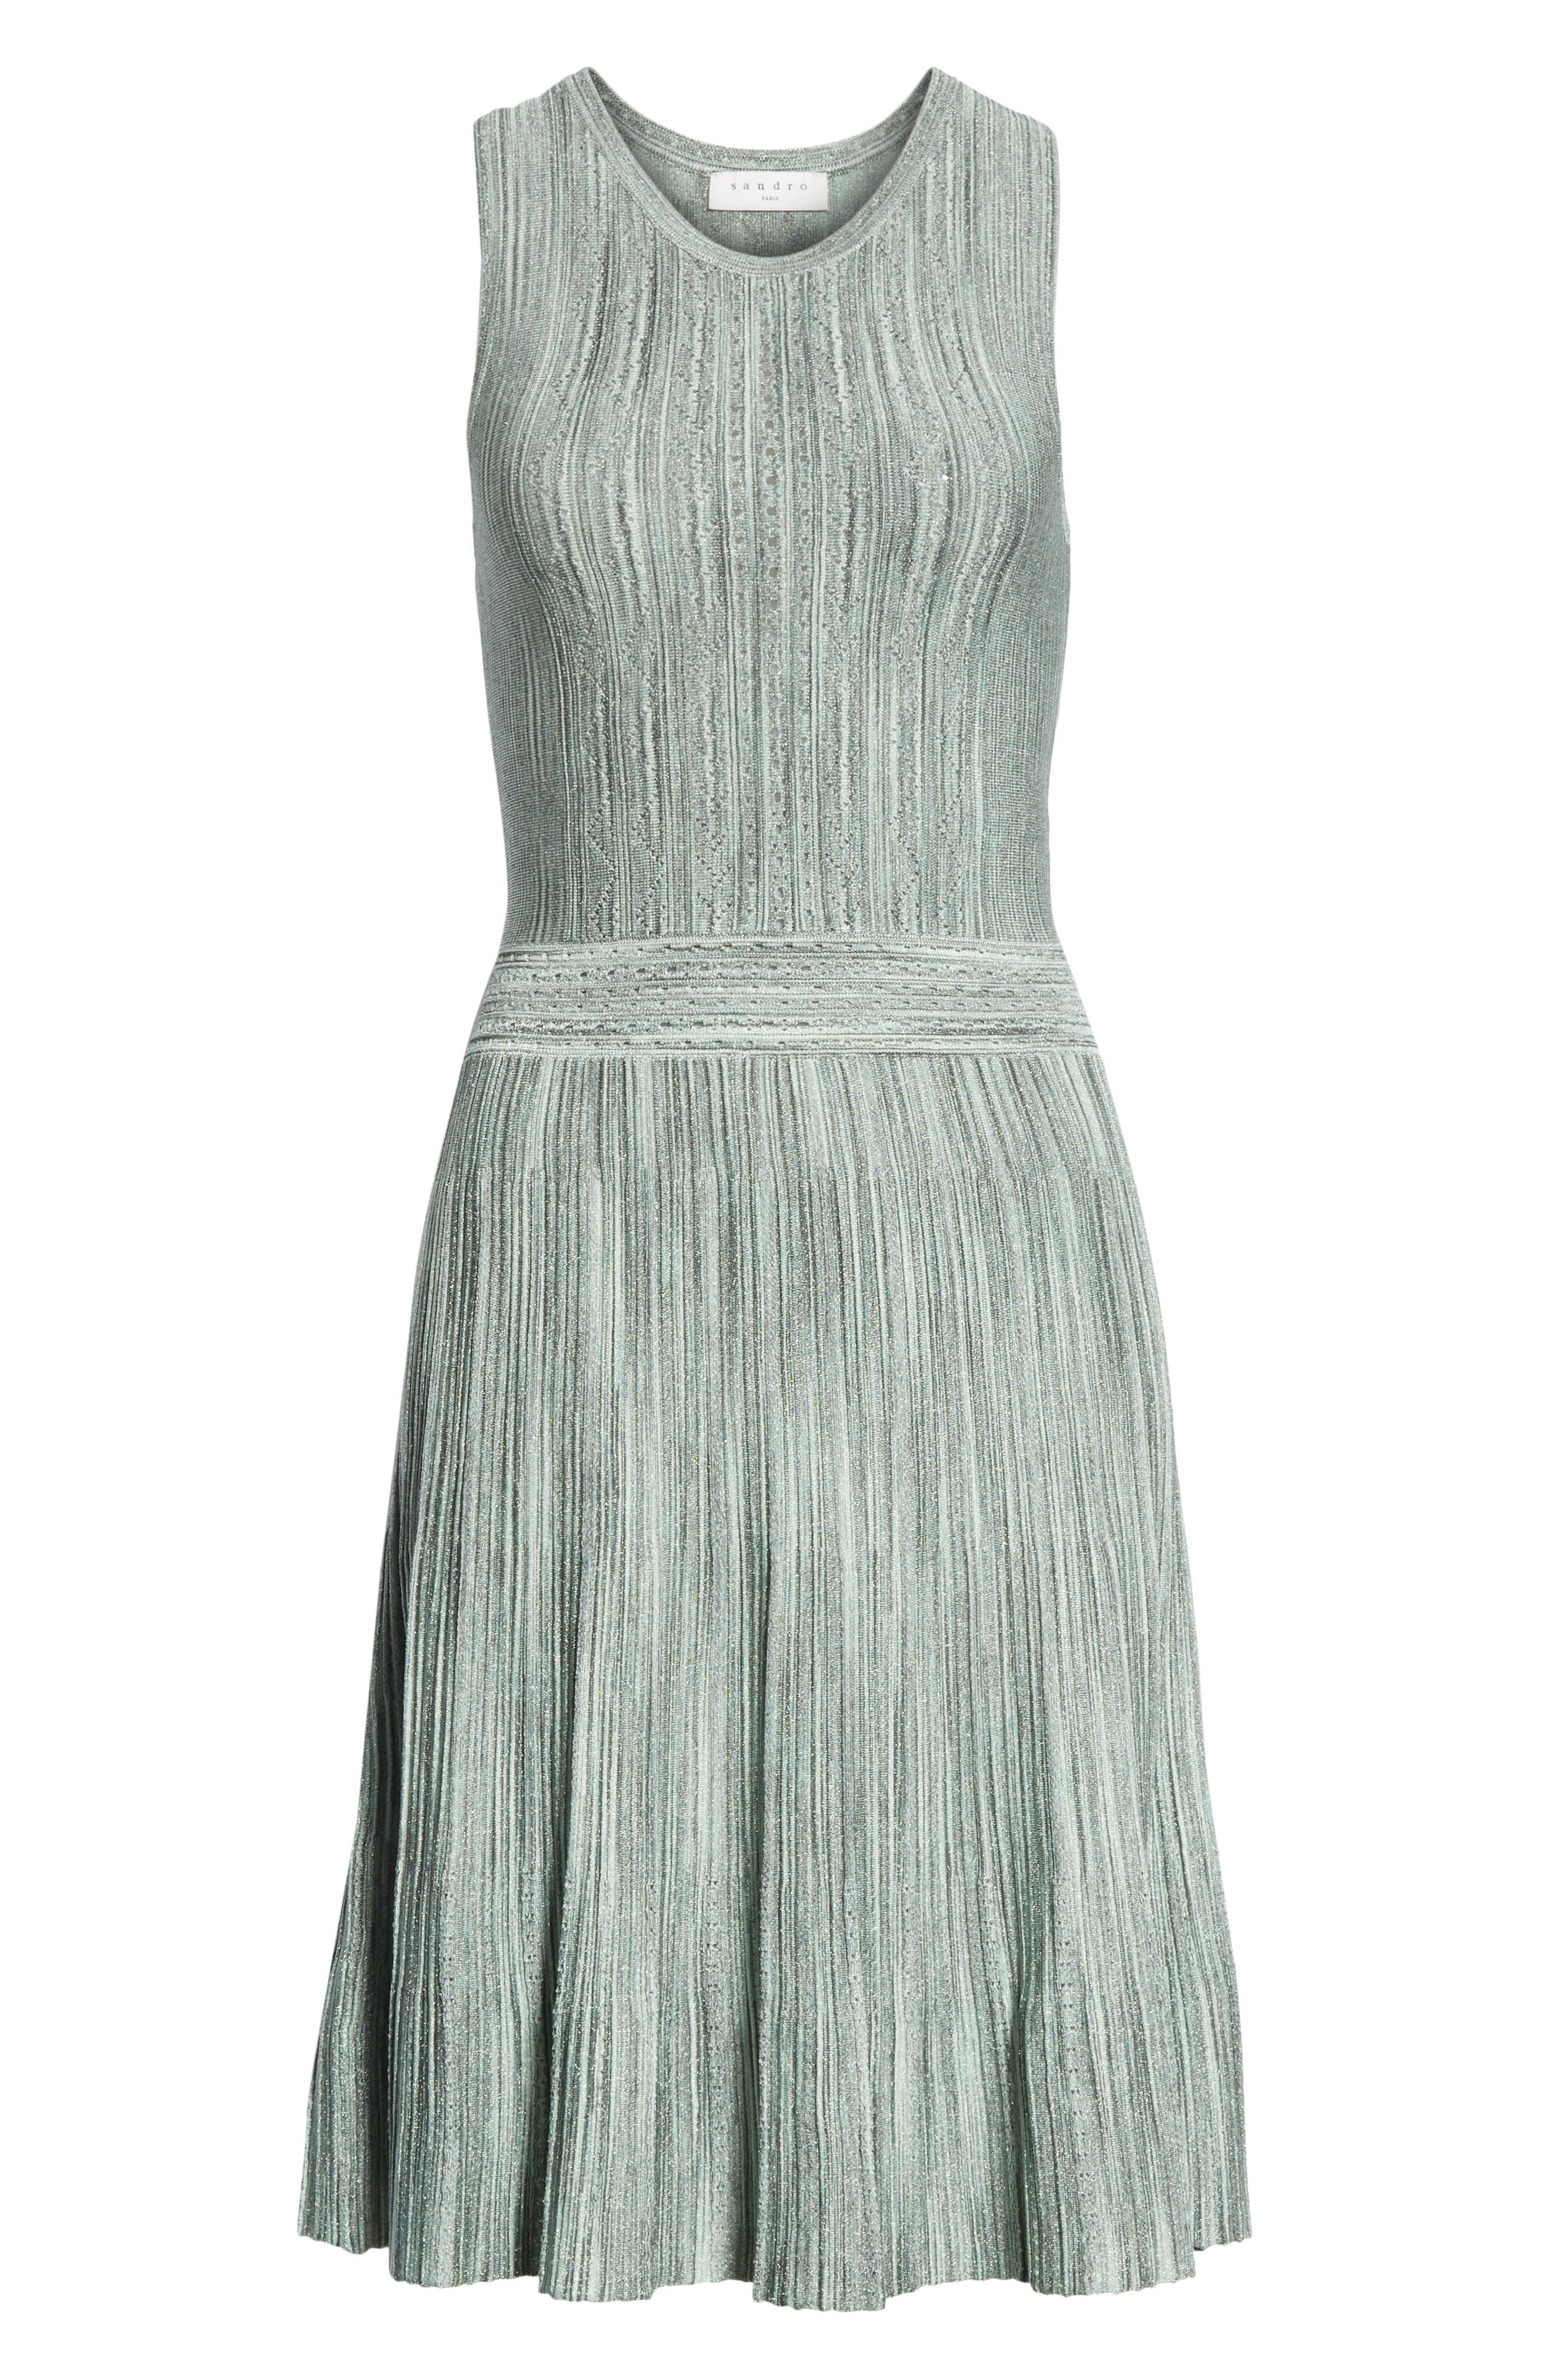 Stretch Knit Fit & Flare Dress,                             Alternate thumbnail 6, color,                             Green